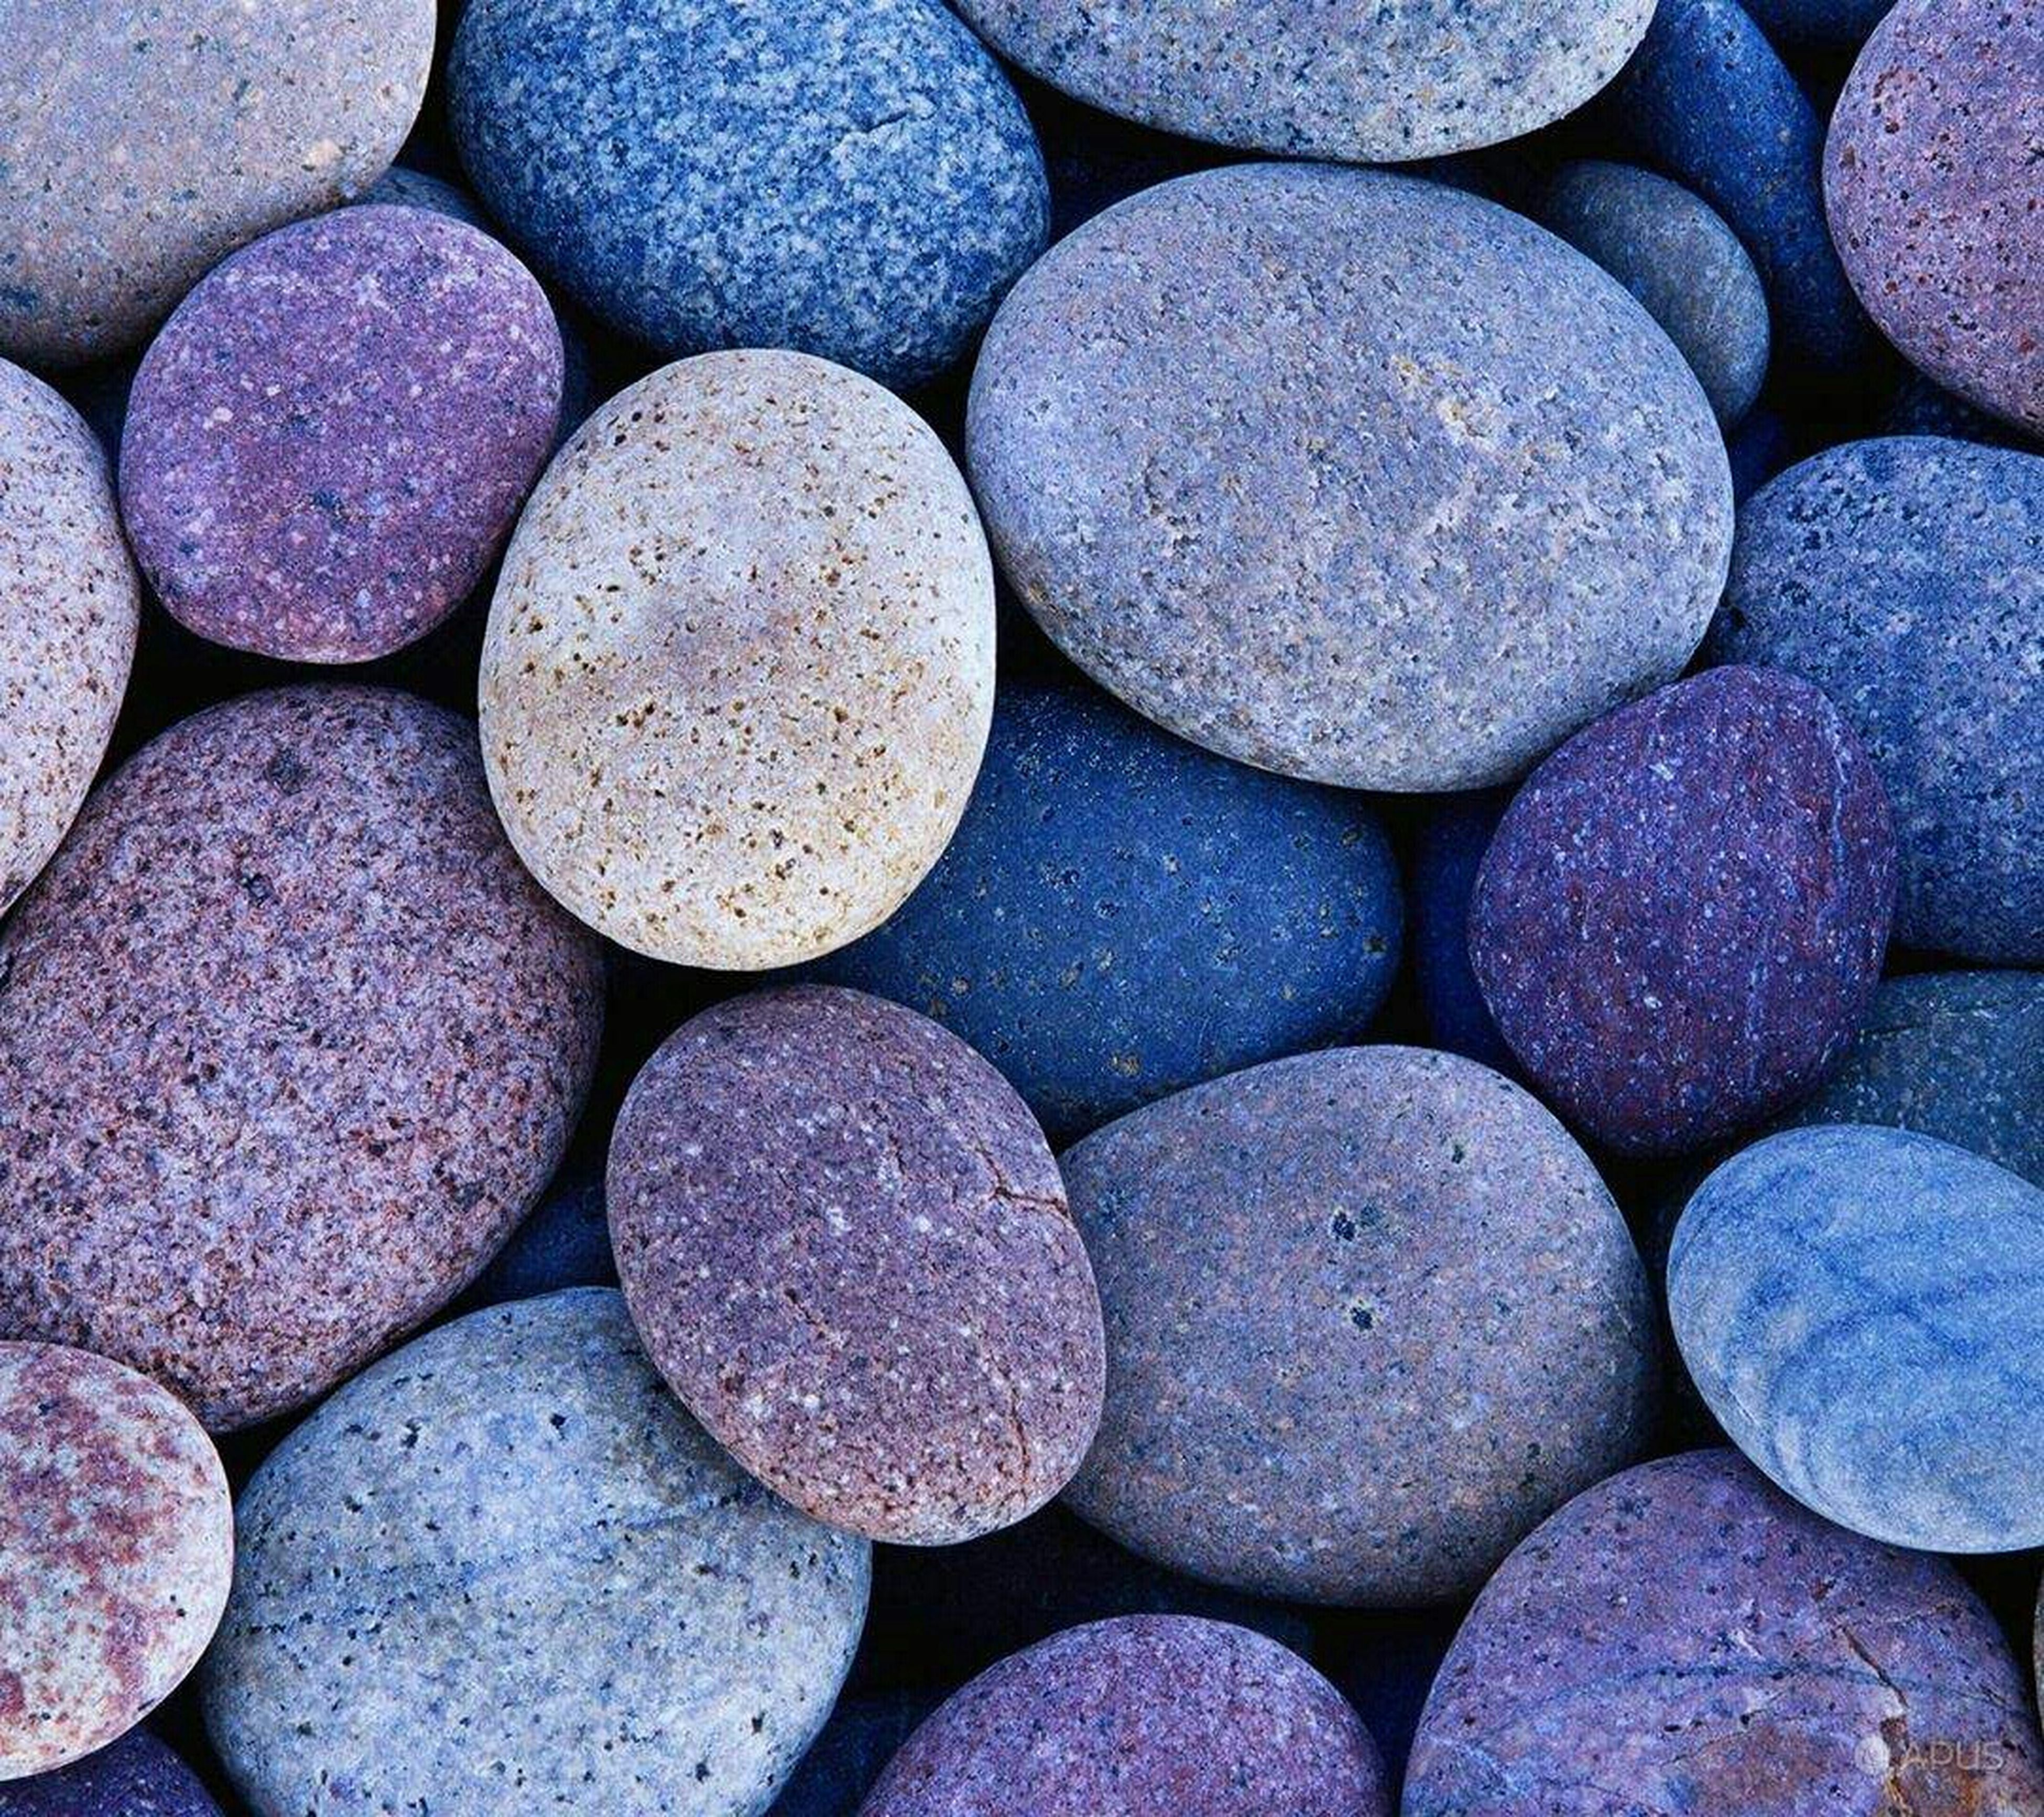 backgrounds, full frame, large group of objects, abundance, stone - object, pebble, textured, stack, beach, stone, pattern, outdoors, no people, rock - object, day, high angle view, close-up, heap, nature, log